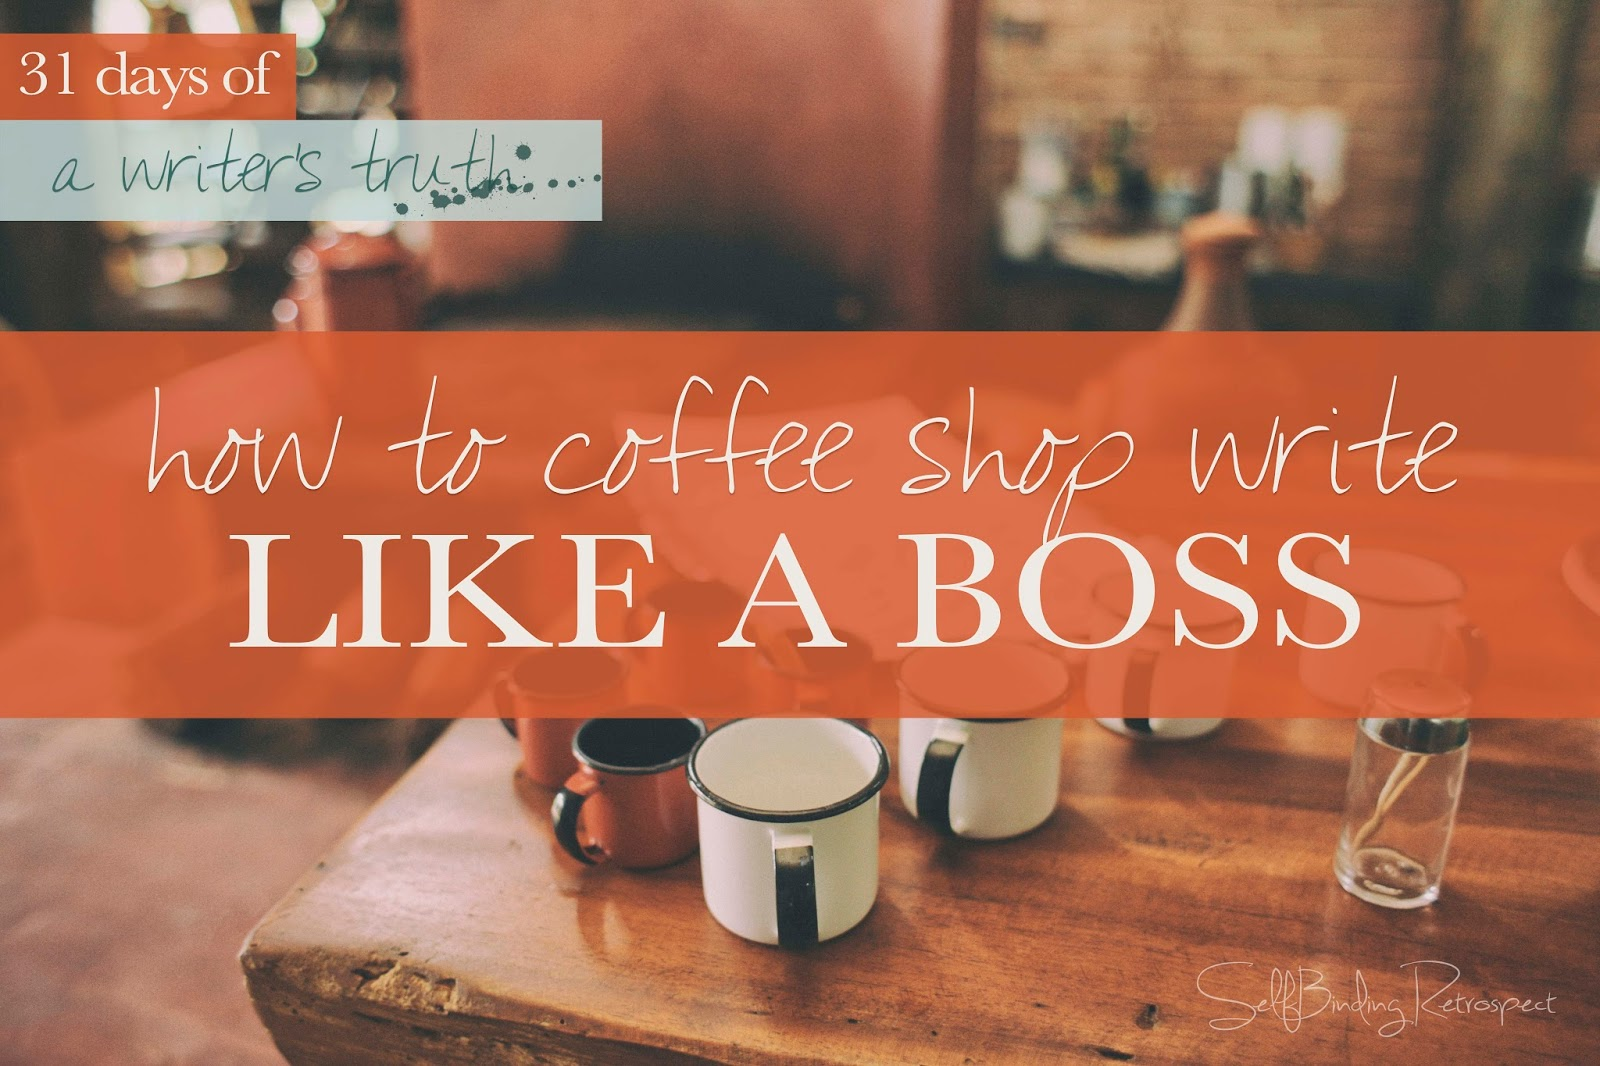 How to coffee shop write like a boss #write31days